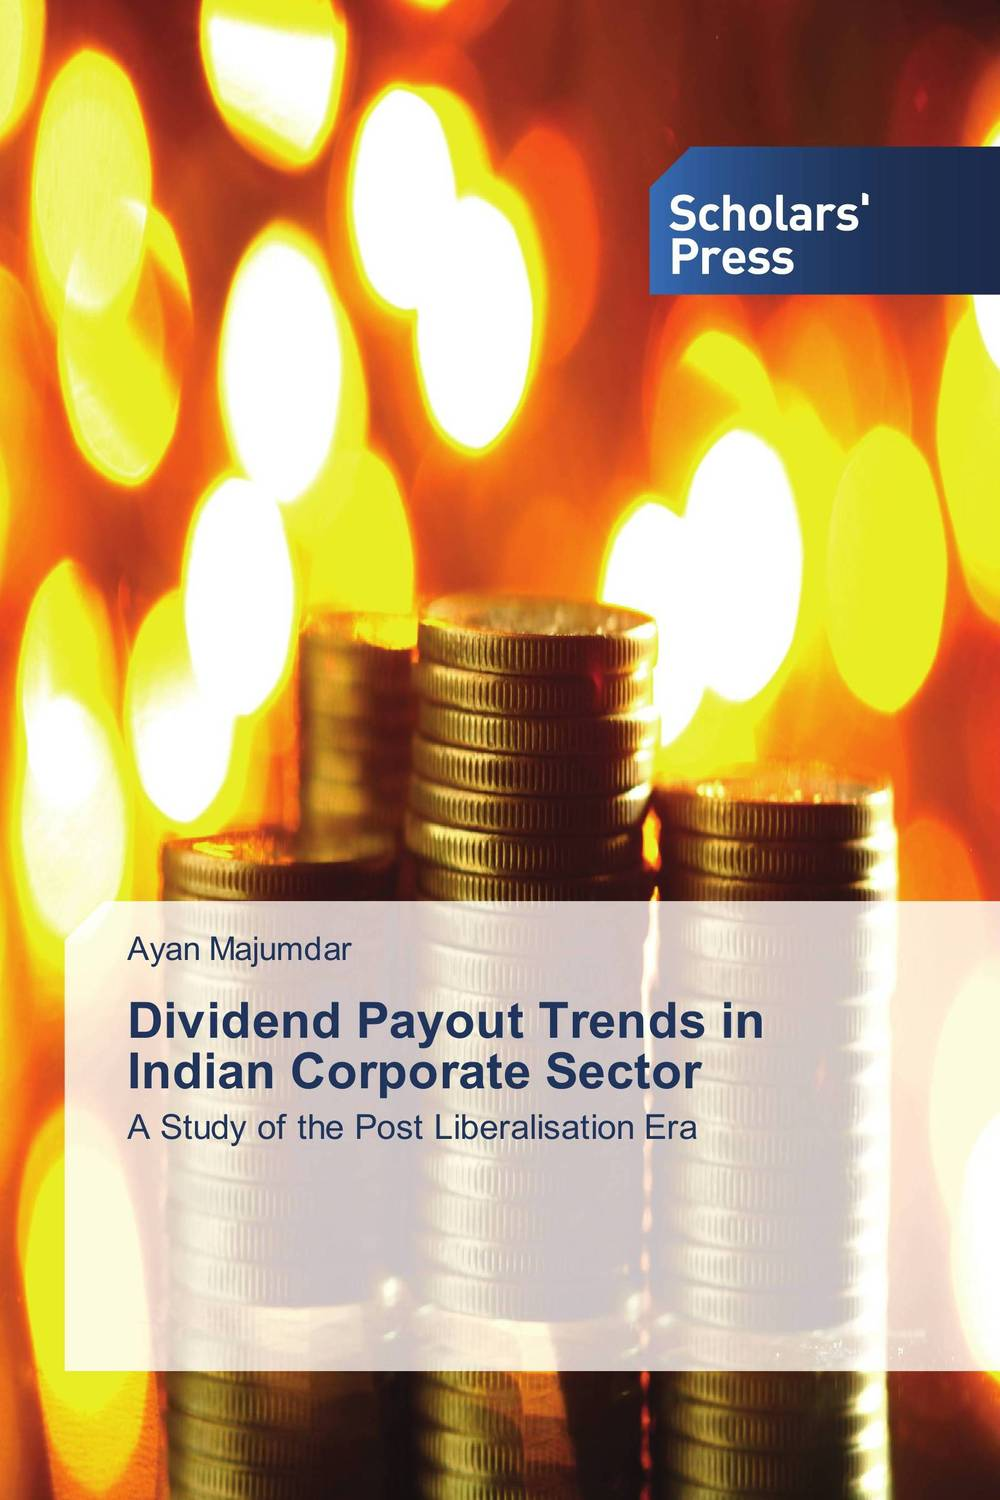 Dividend Payout Trends in Indian Corporate Sector rabia qamar and imad ud din akbar study of factors affecting dividend yield and dividend payout ratio